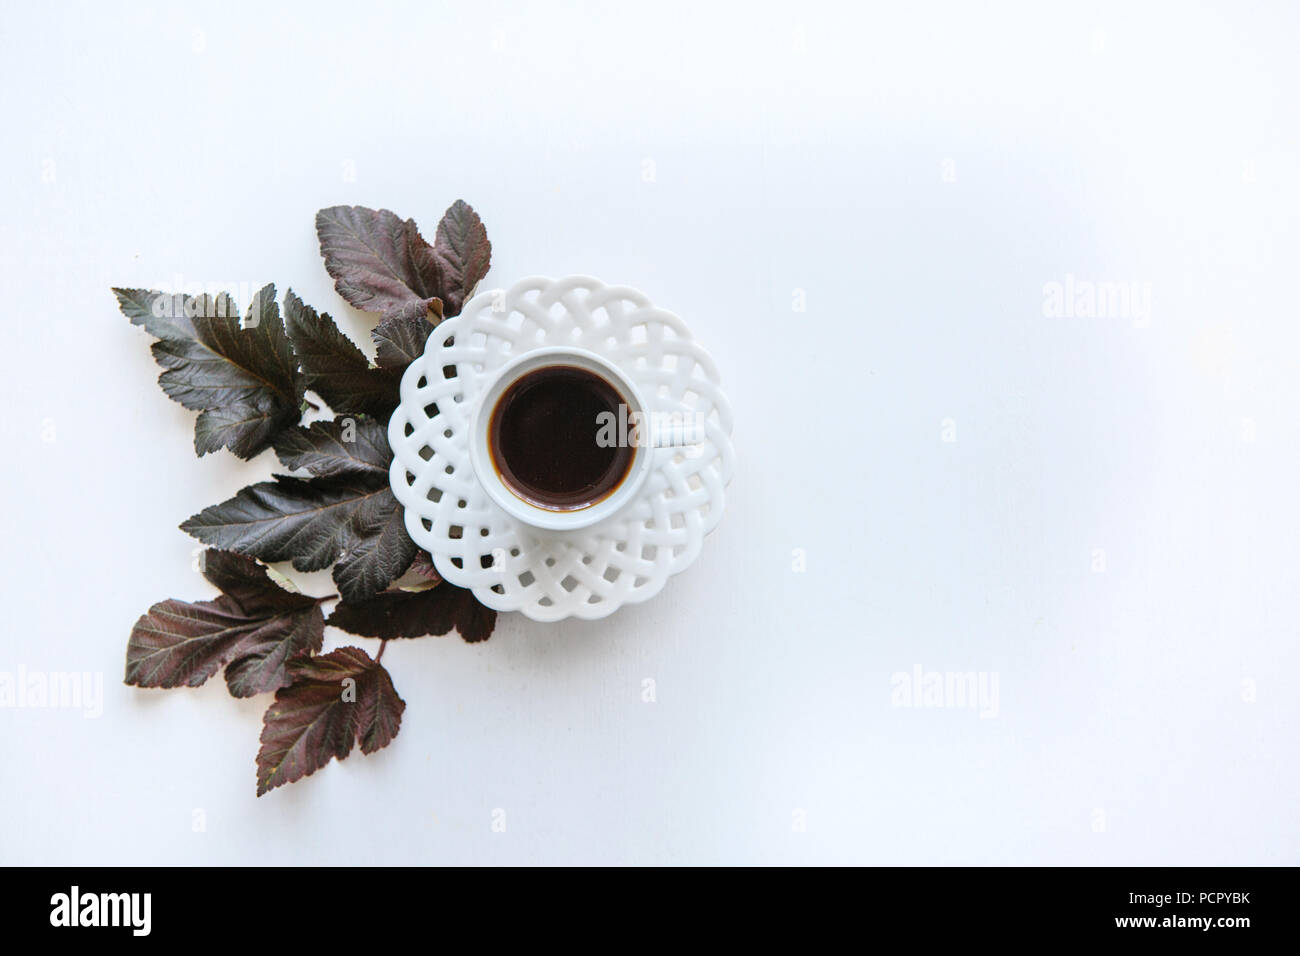 A cup of aromatic espresso or black tea. Nearby lie autumn leaves. Simple minimalistic autumn design. - Stock Image